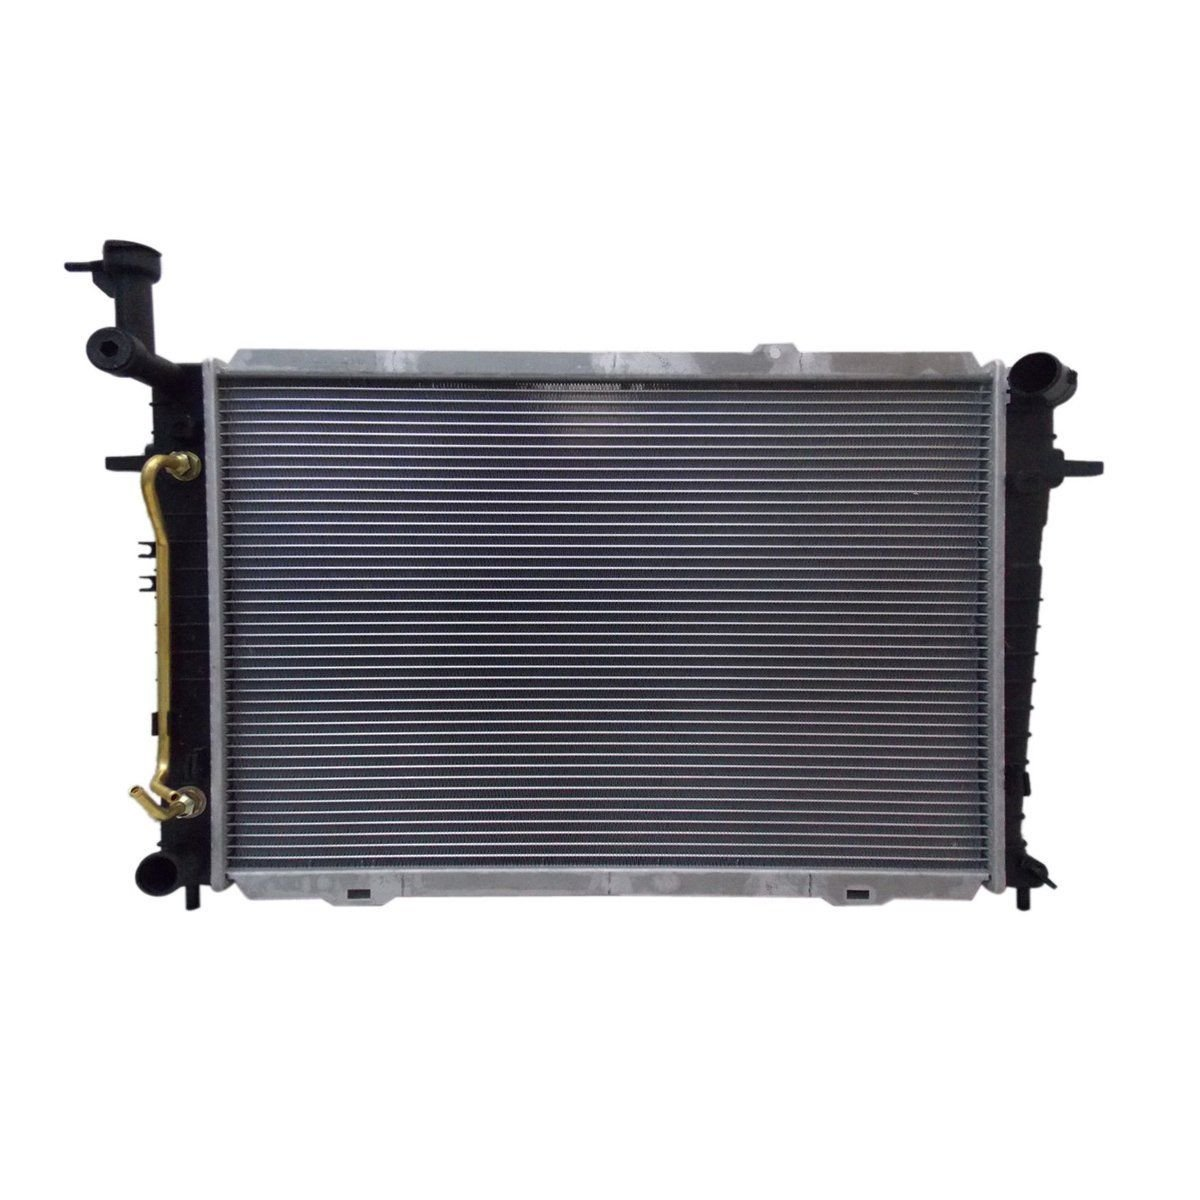 SCITOO Radiator 2785 fit Hyundai Tucson Kia Sportage 2.7L 2005-2009 by SCITOO